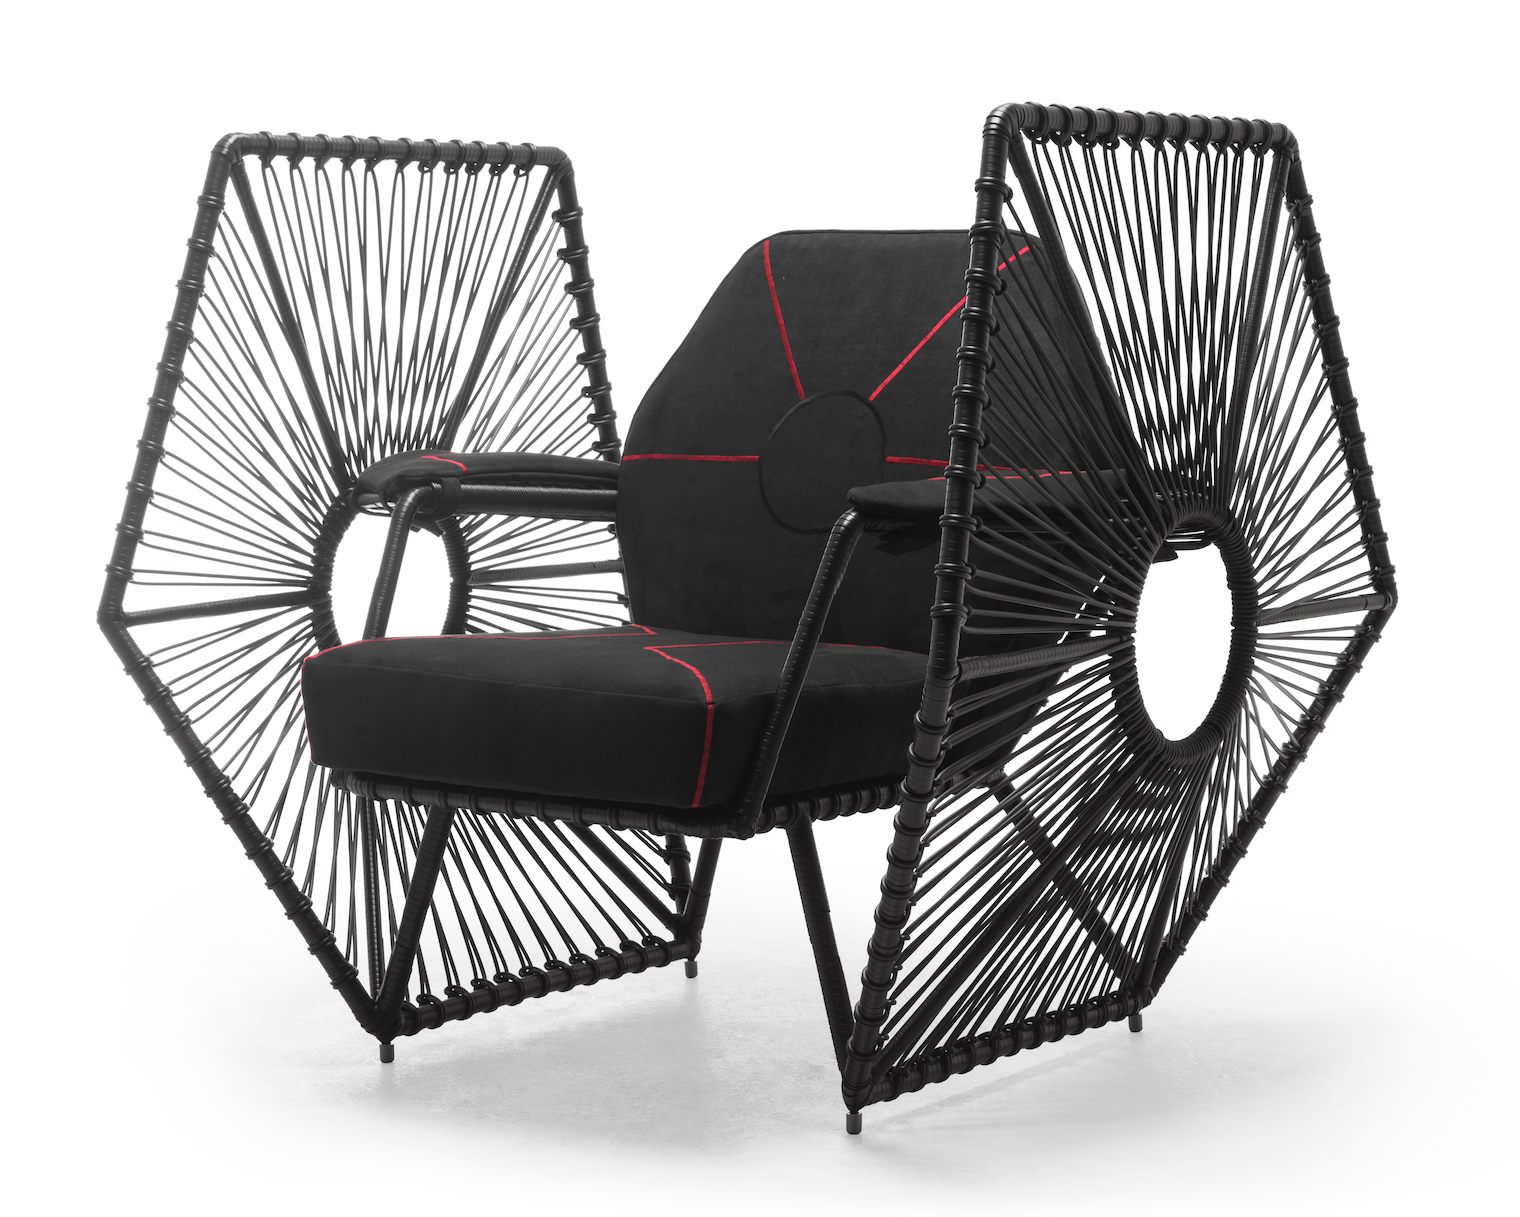 Join the Dark Side With This Star Wars Furniture